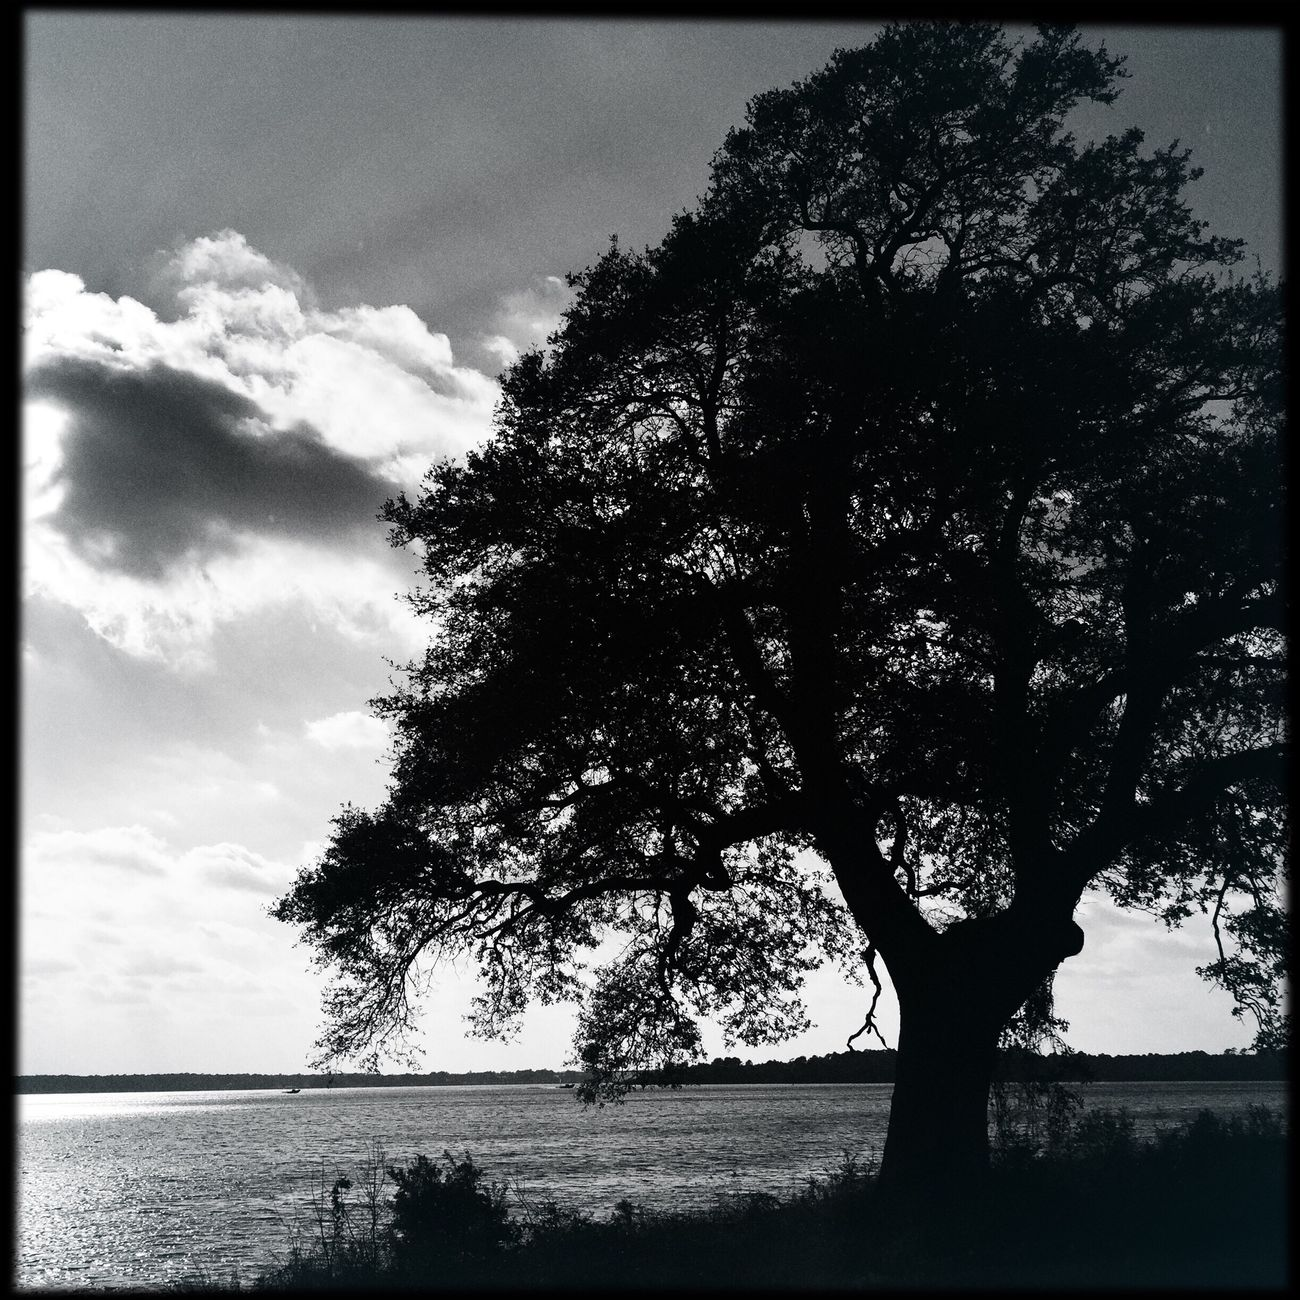 In the shadows of the tree... Blackandwhite Tree Sun River View Water